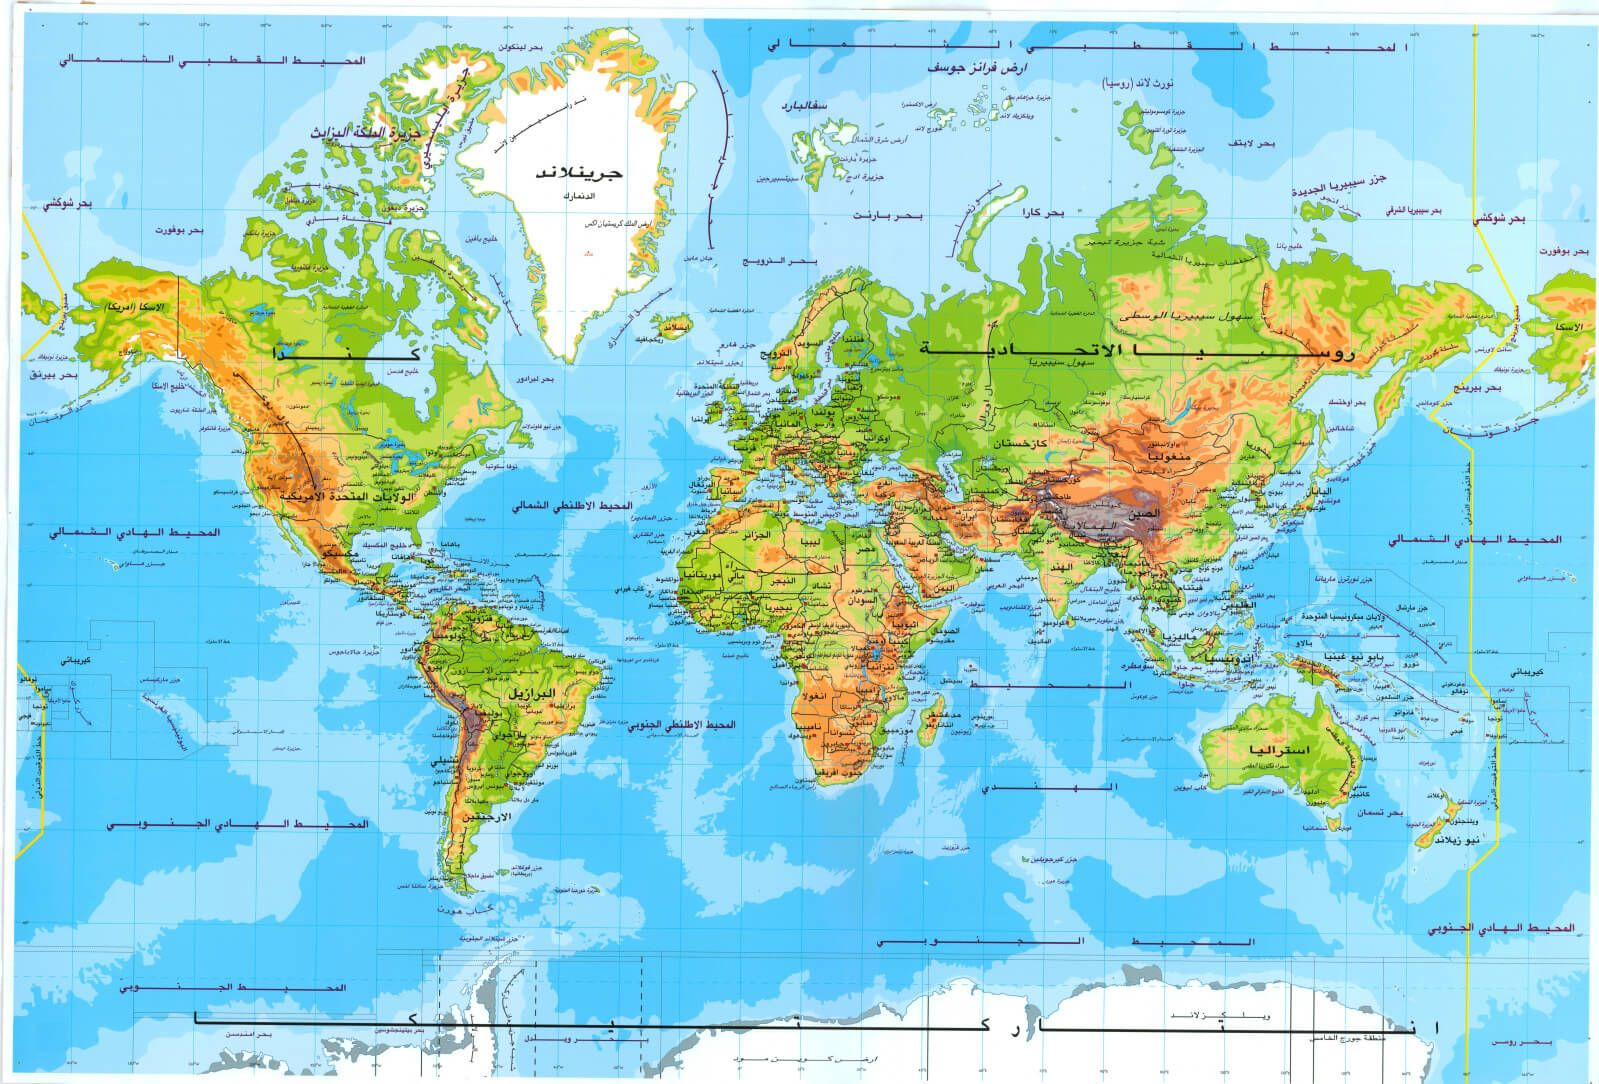 Pin By Maha On كضقخؤ Art Journal Resources Map Europe Map